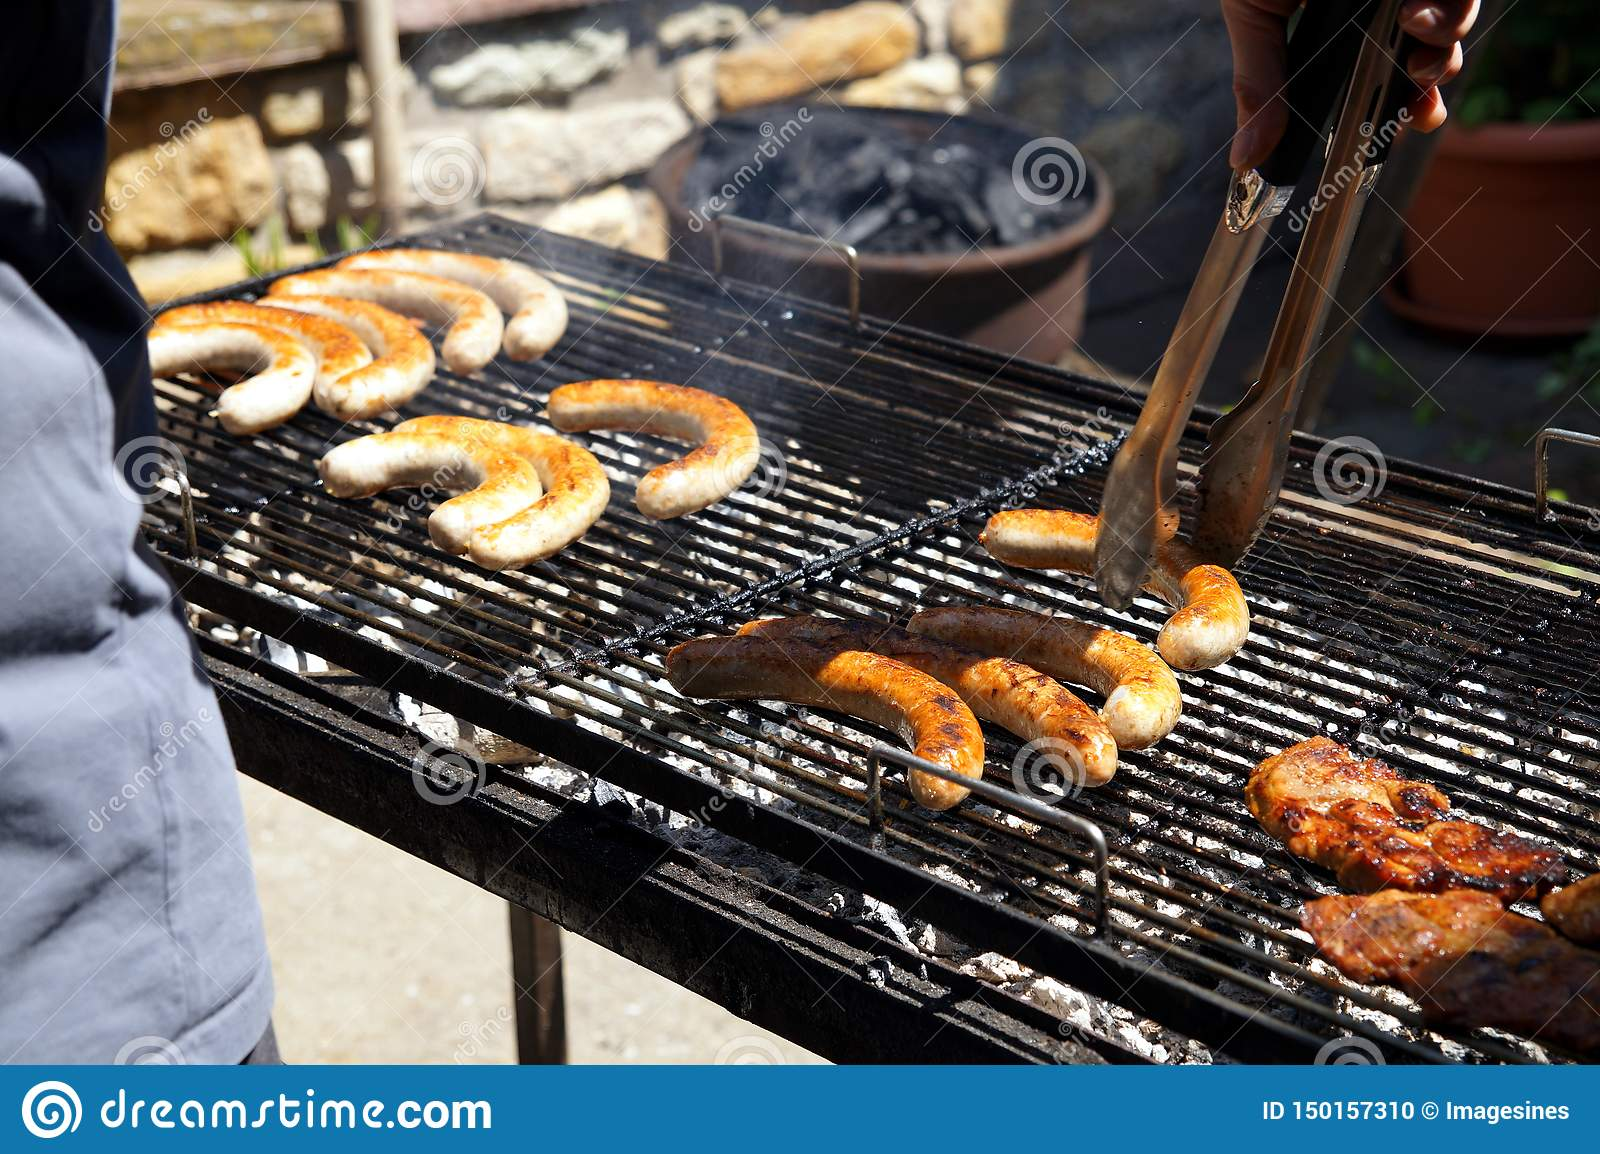 Delicious row of pork bratwurst and grilled meat over the coals on barbecue.lifting a pair of tongs in a view of his hand.